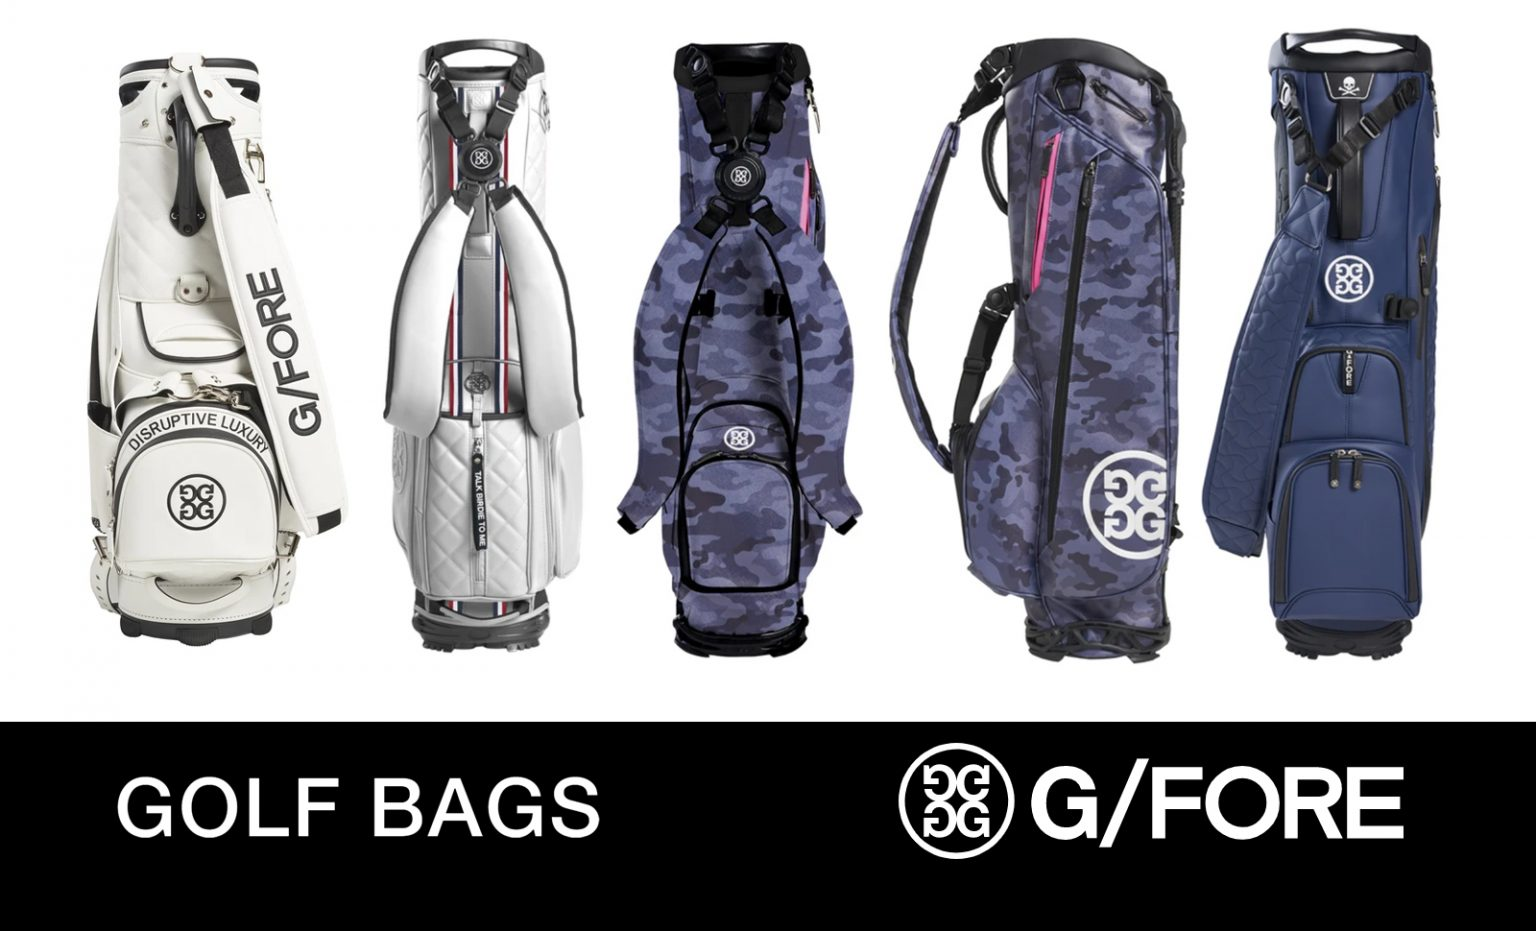 G/Fore Golf Bags 2021